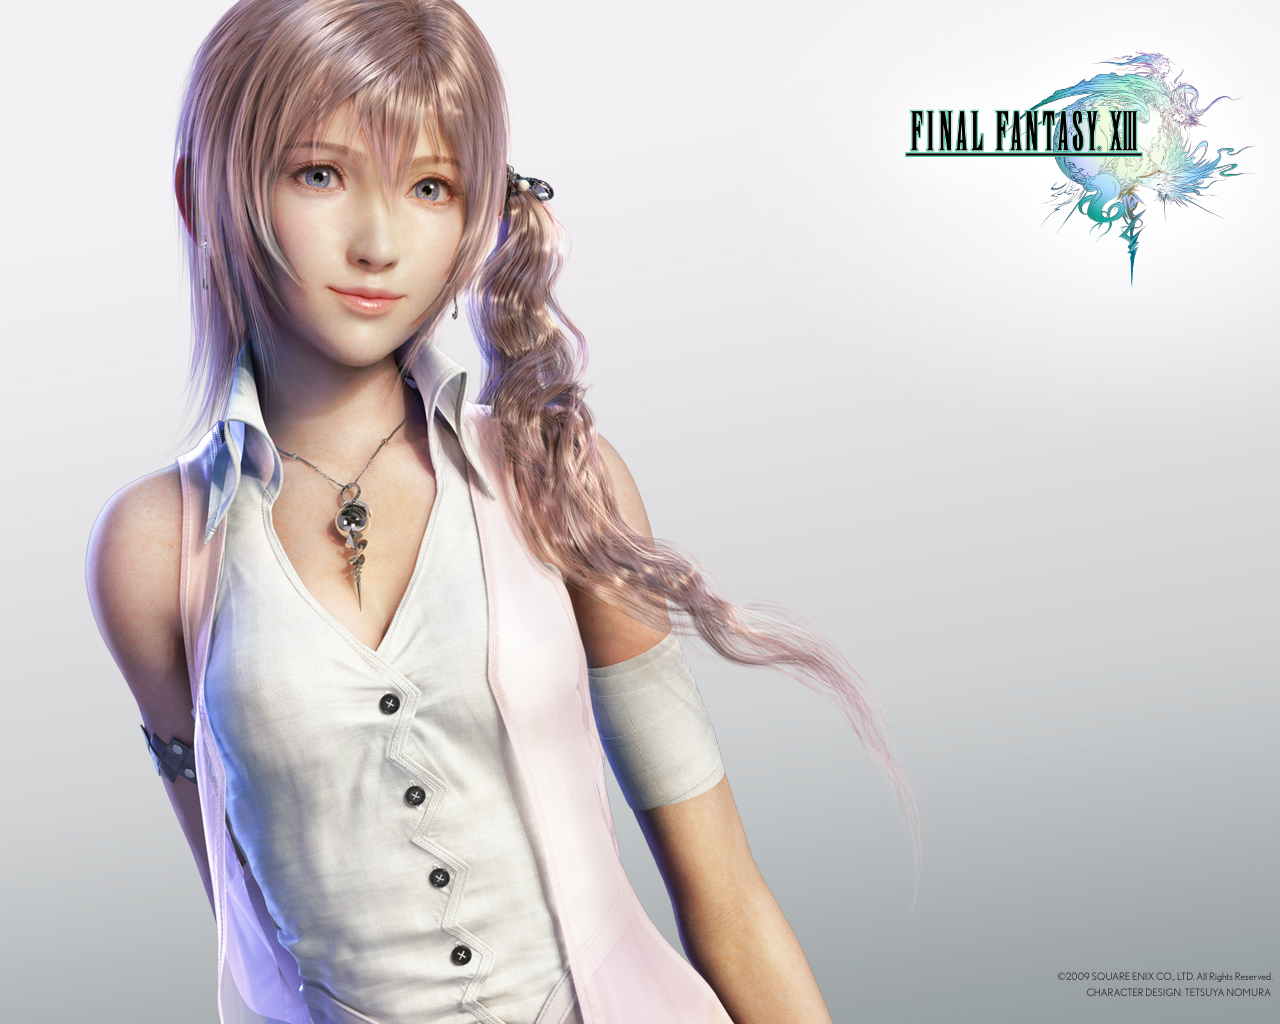 Final fantasy final fantasy xiii games images final fantasy final fantasy xiii games voltagebd Gallery